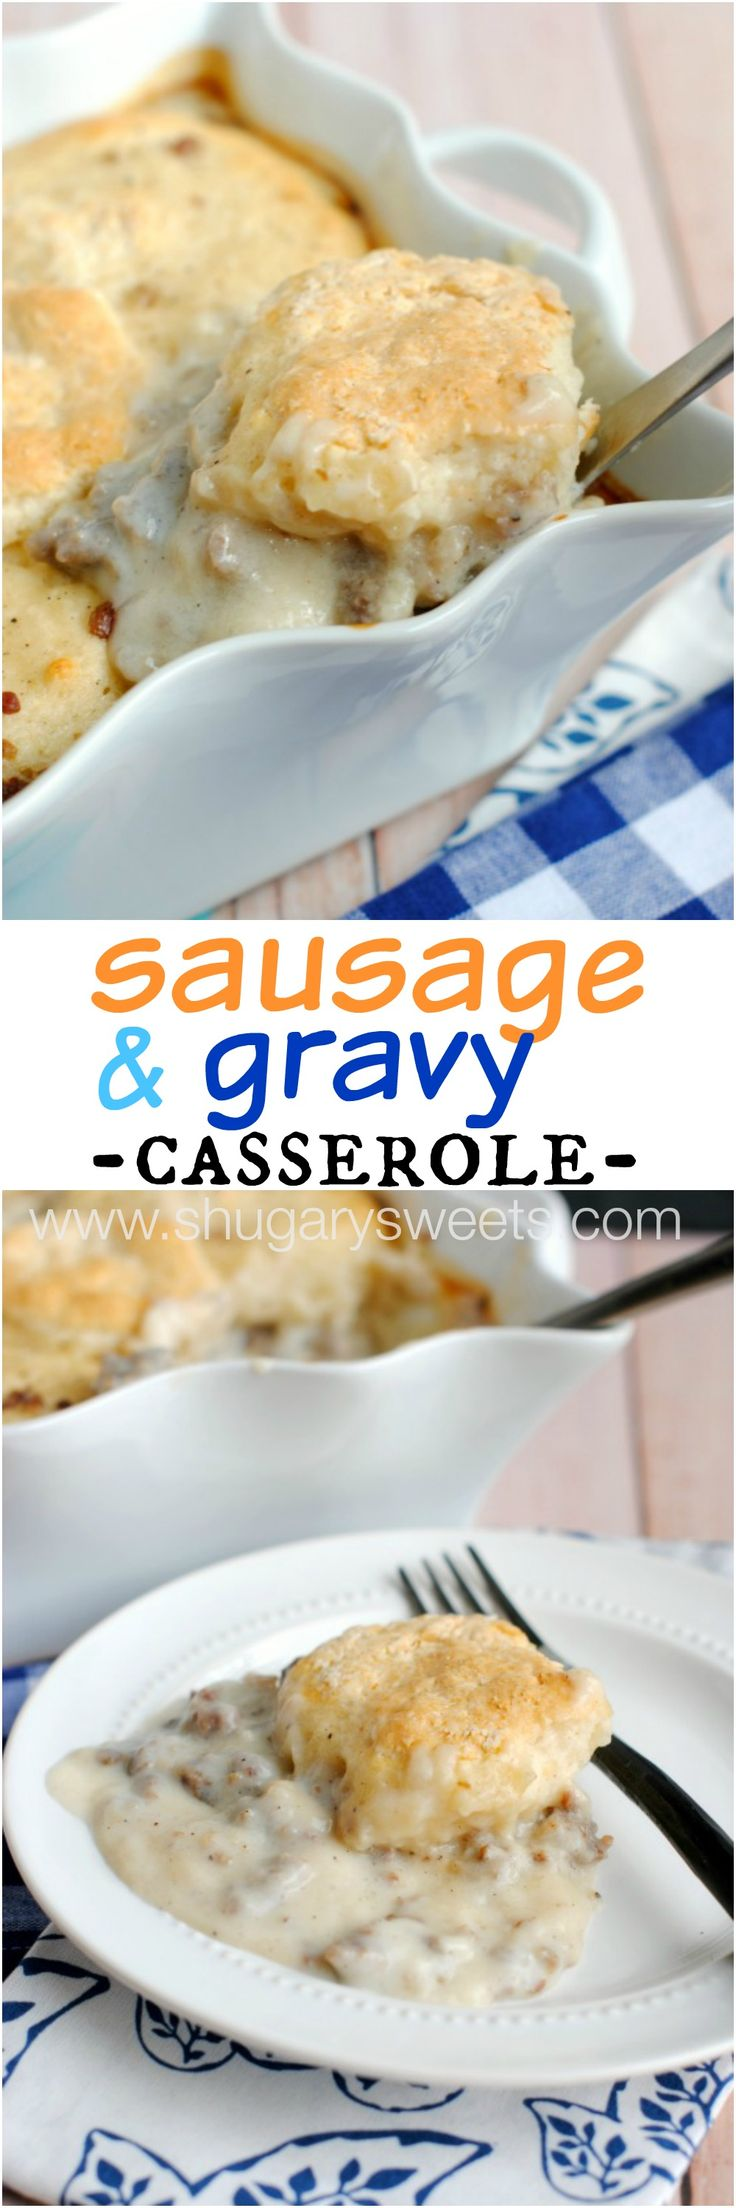 Sausage and Gravy Breakfast Casserole: this delicious, make ahead breakfast idea is perfect for those hectic mornings or holidays!